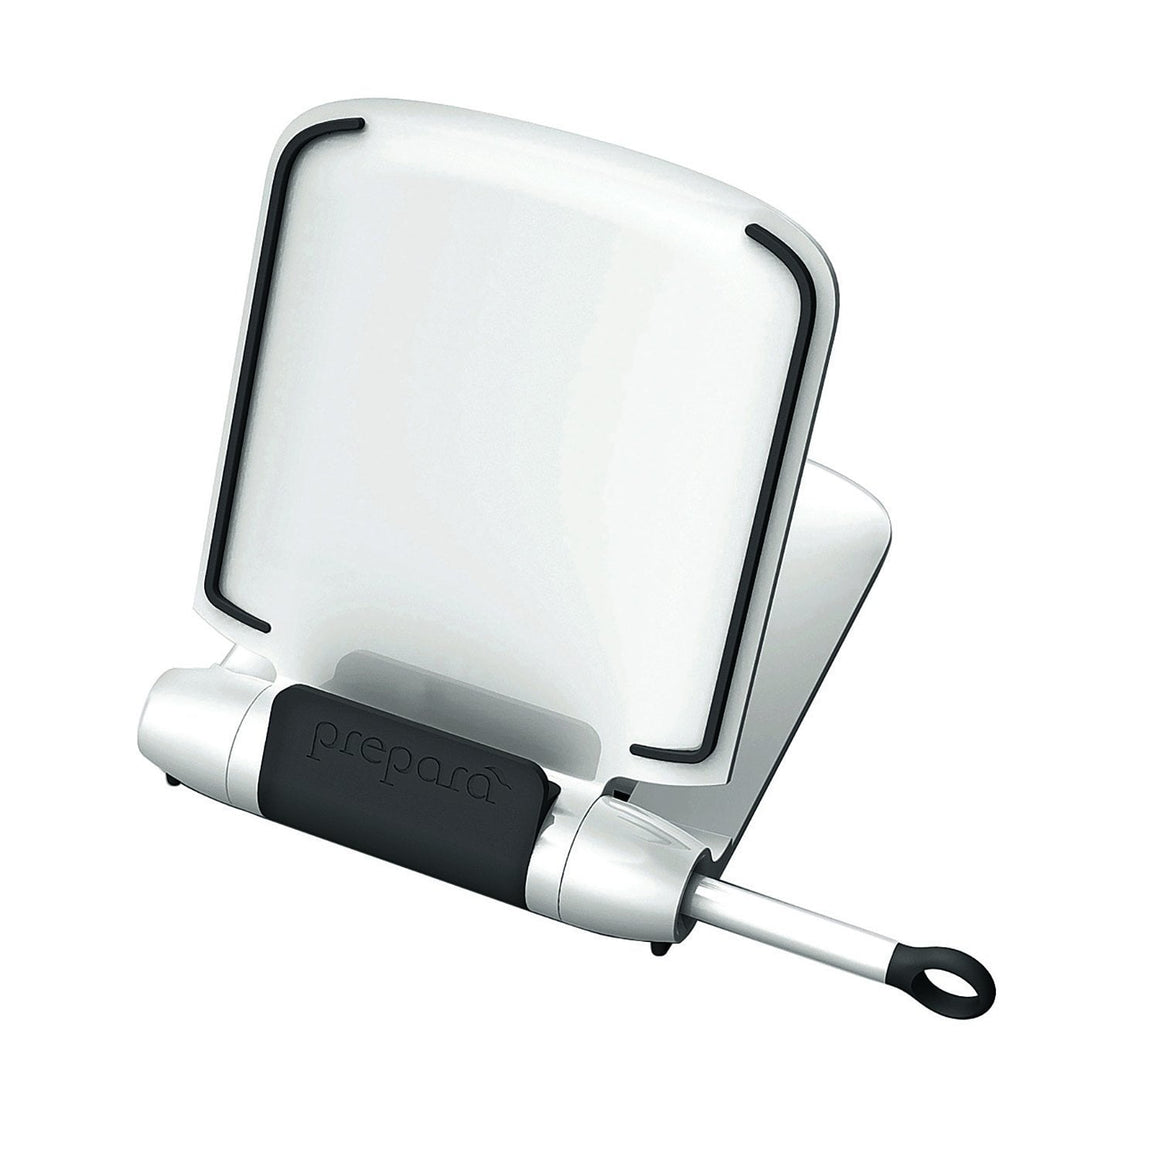 Prepara iPrep Tablet Stand and Stylus White - stuff-n-things